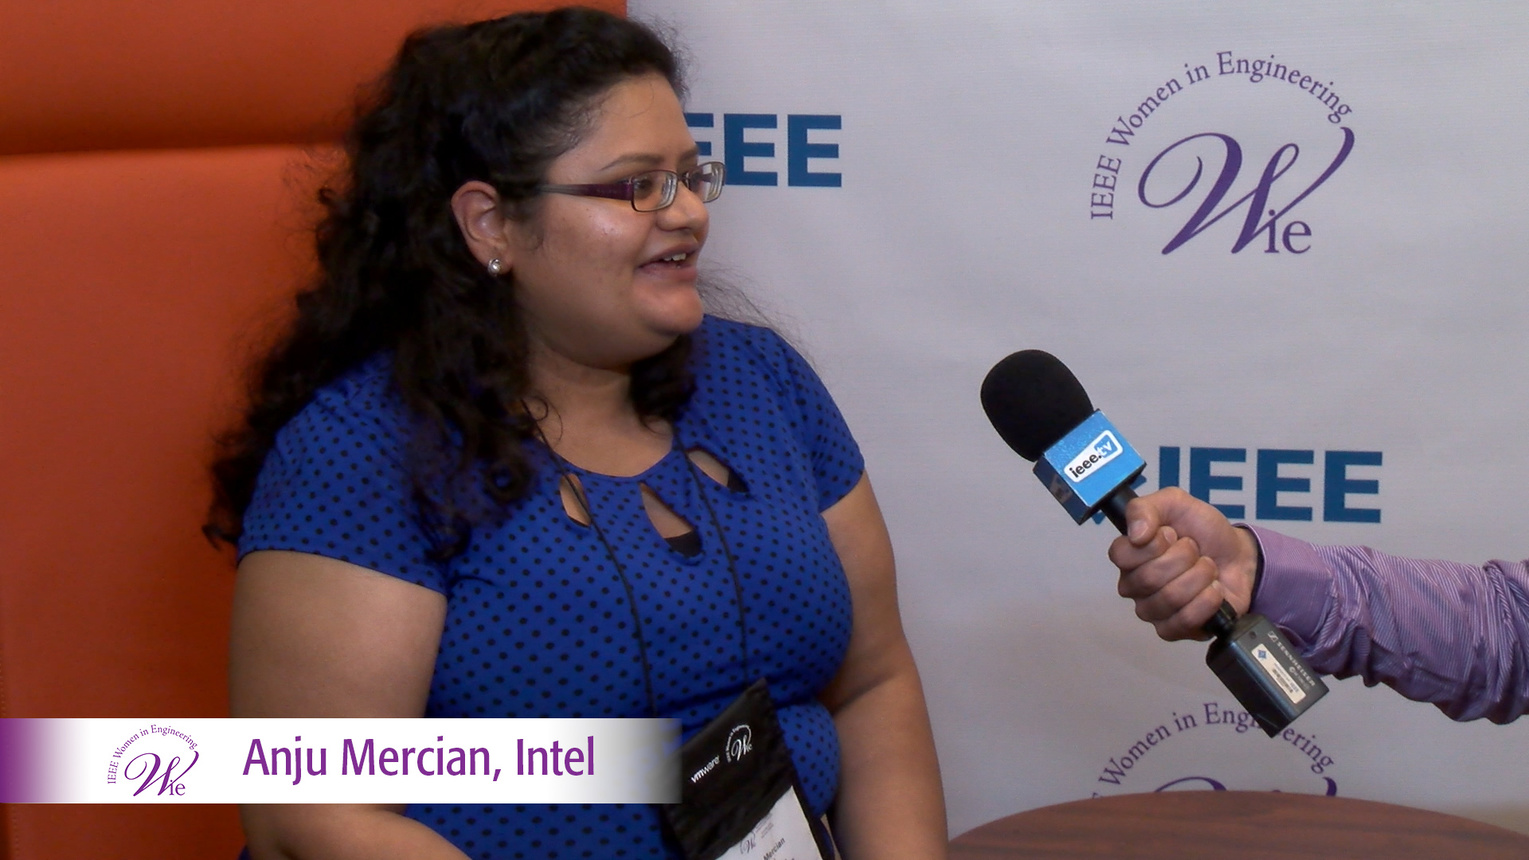 Anju Mercian from Intel at WIE ILC 2016